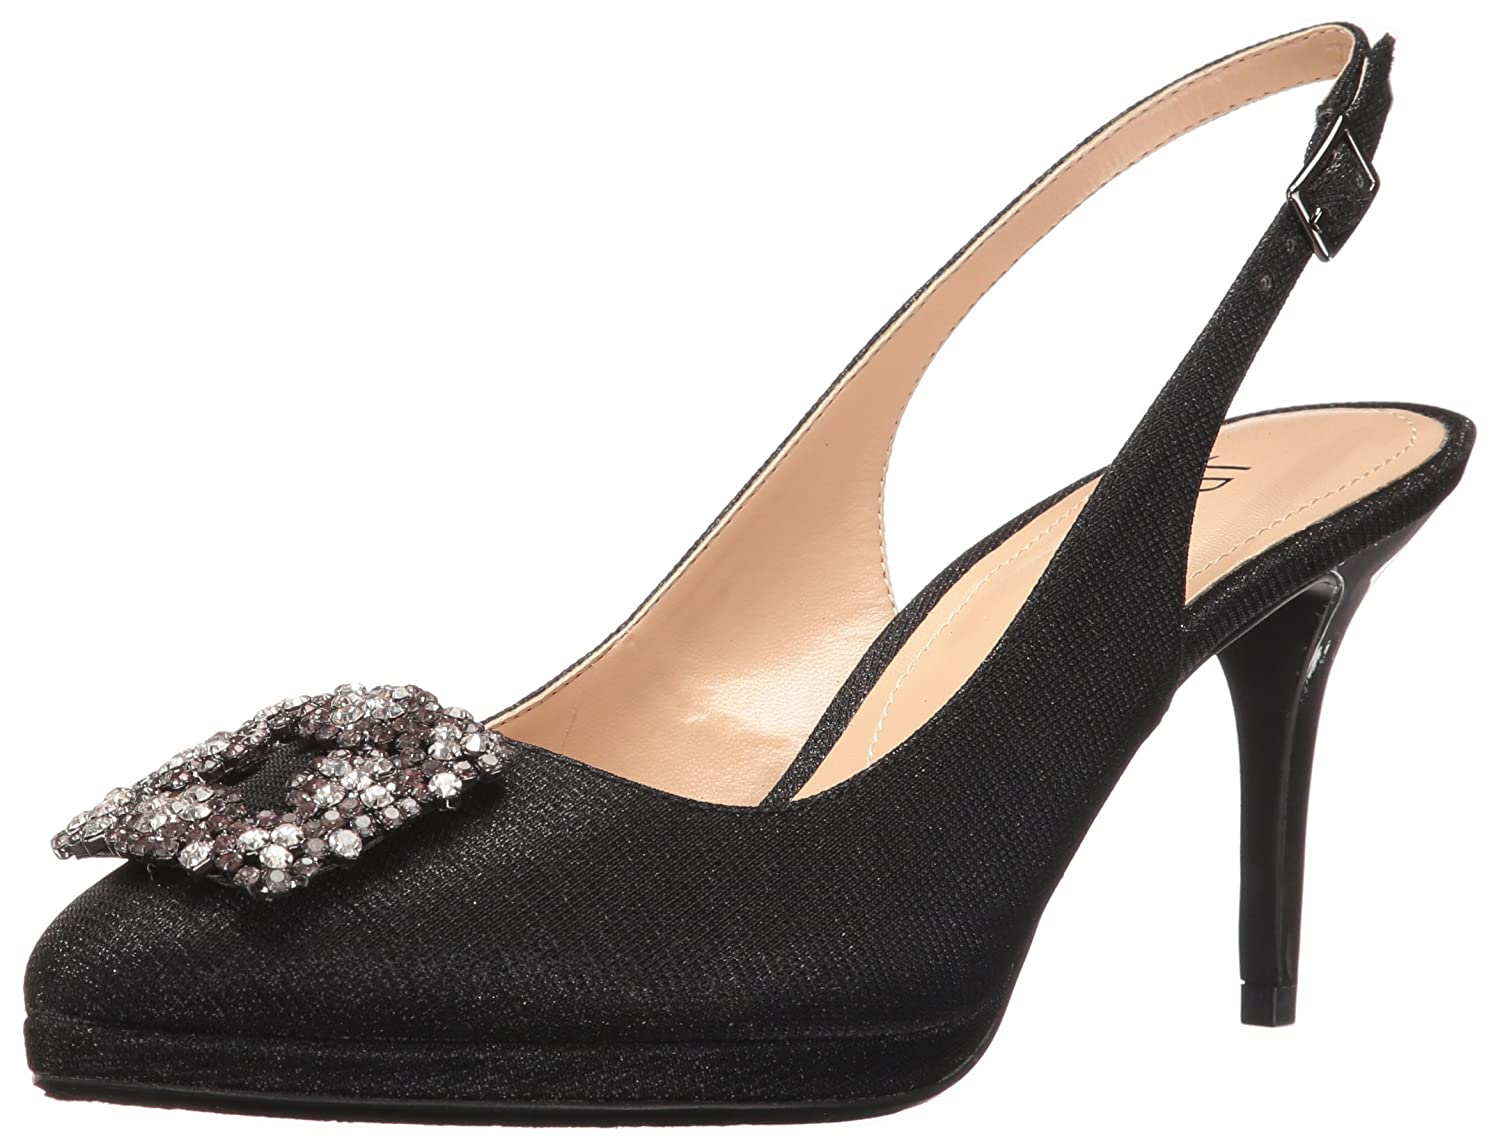 J.Renee Women's Devorah Dress Pump B01INJK20W 8 N US|Black